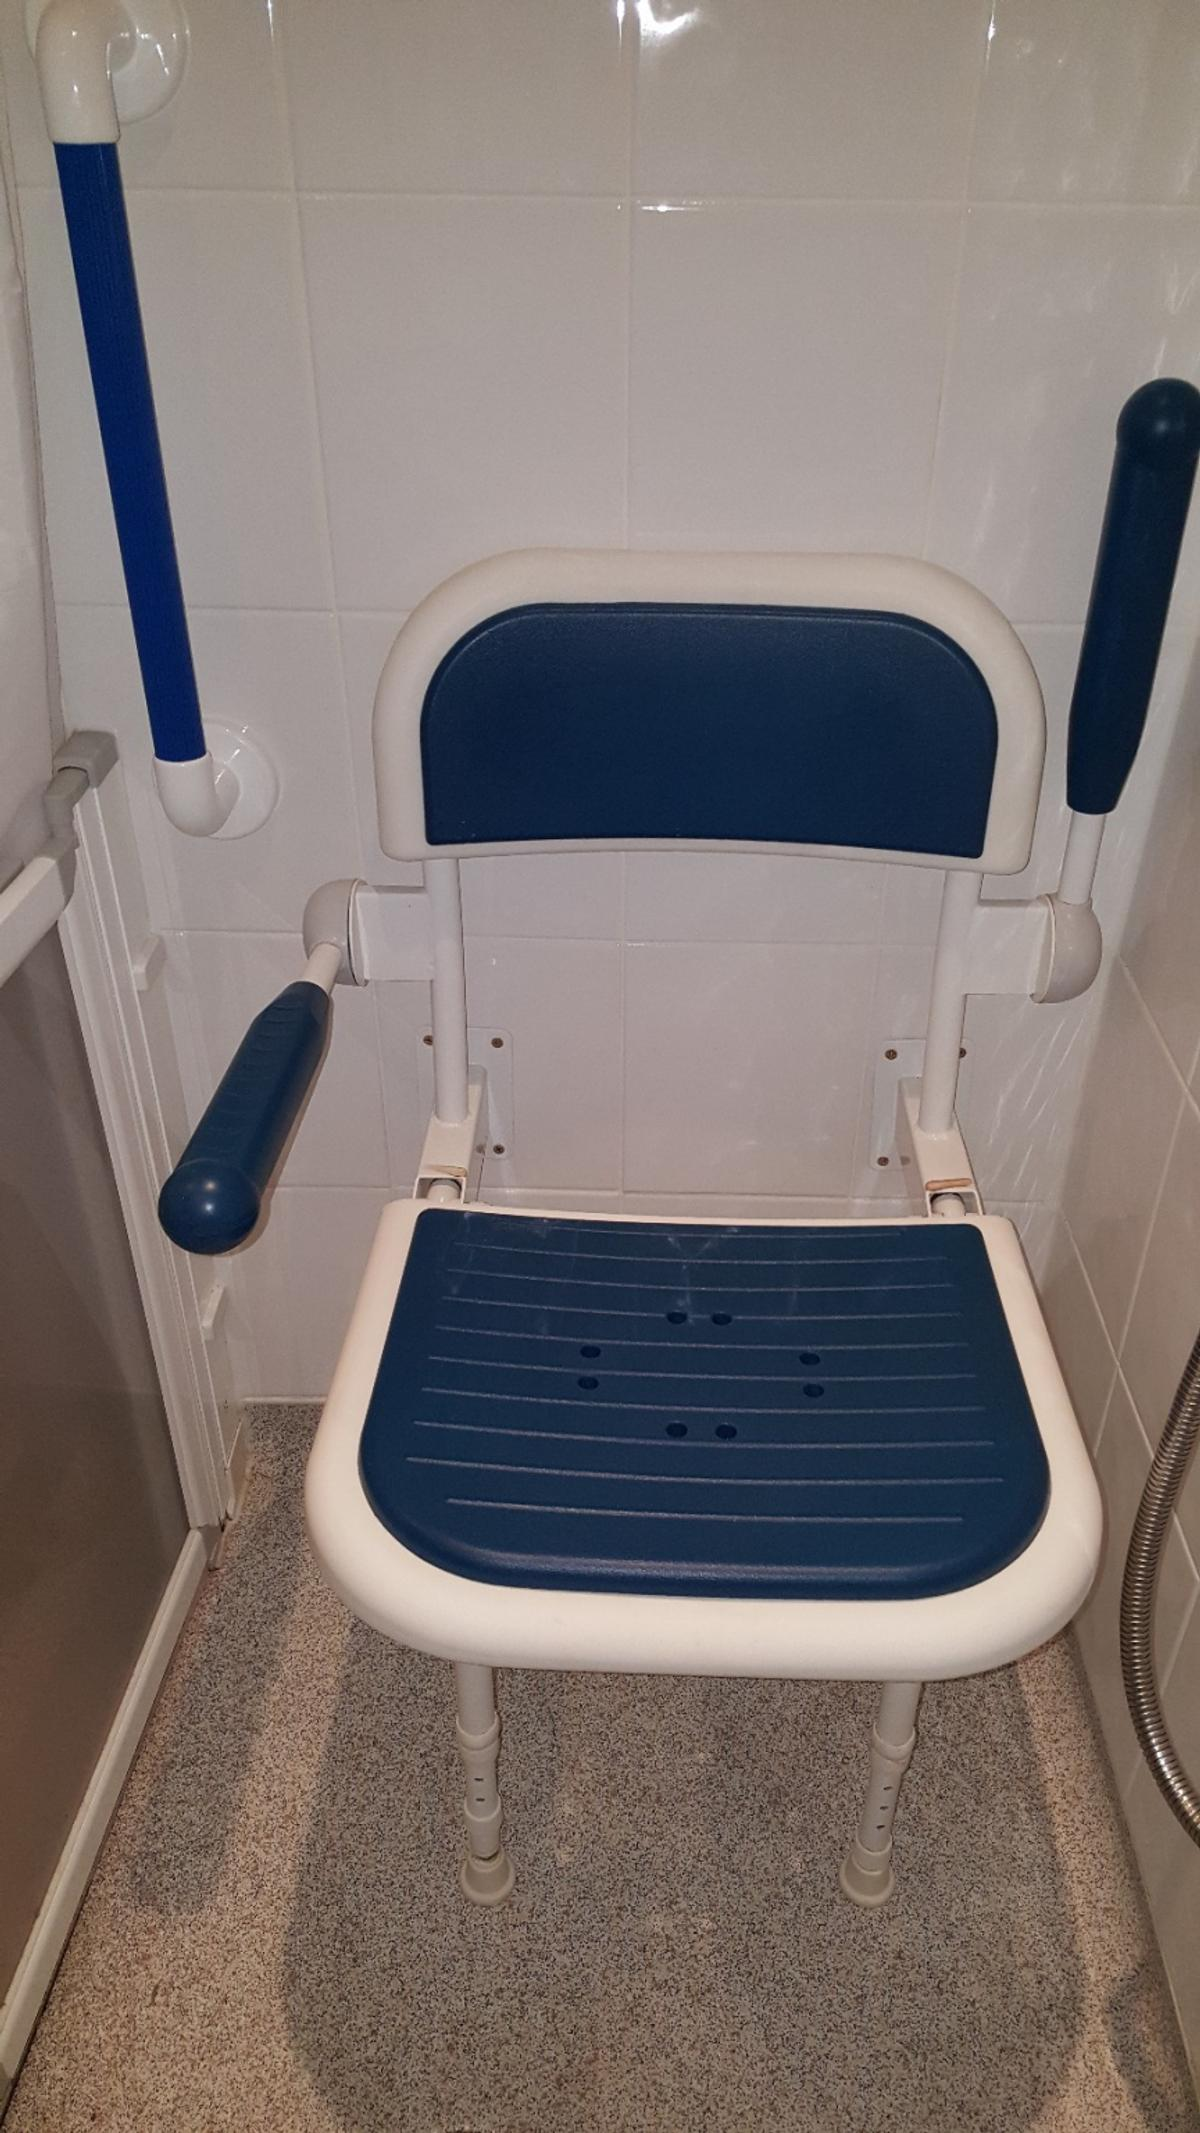 Folding Mobility Bath Seat 2 Wall Support